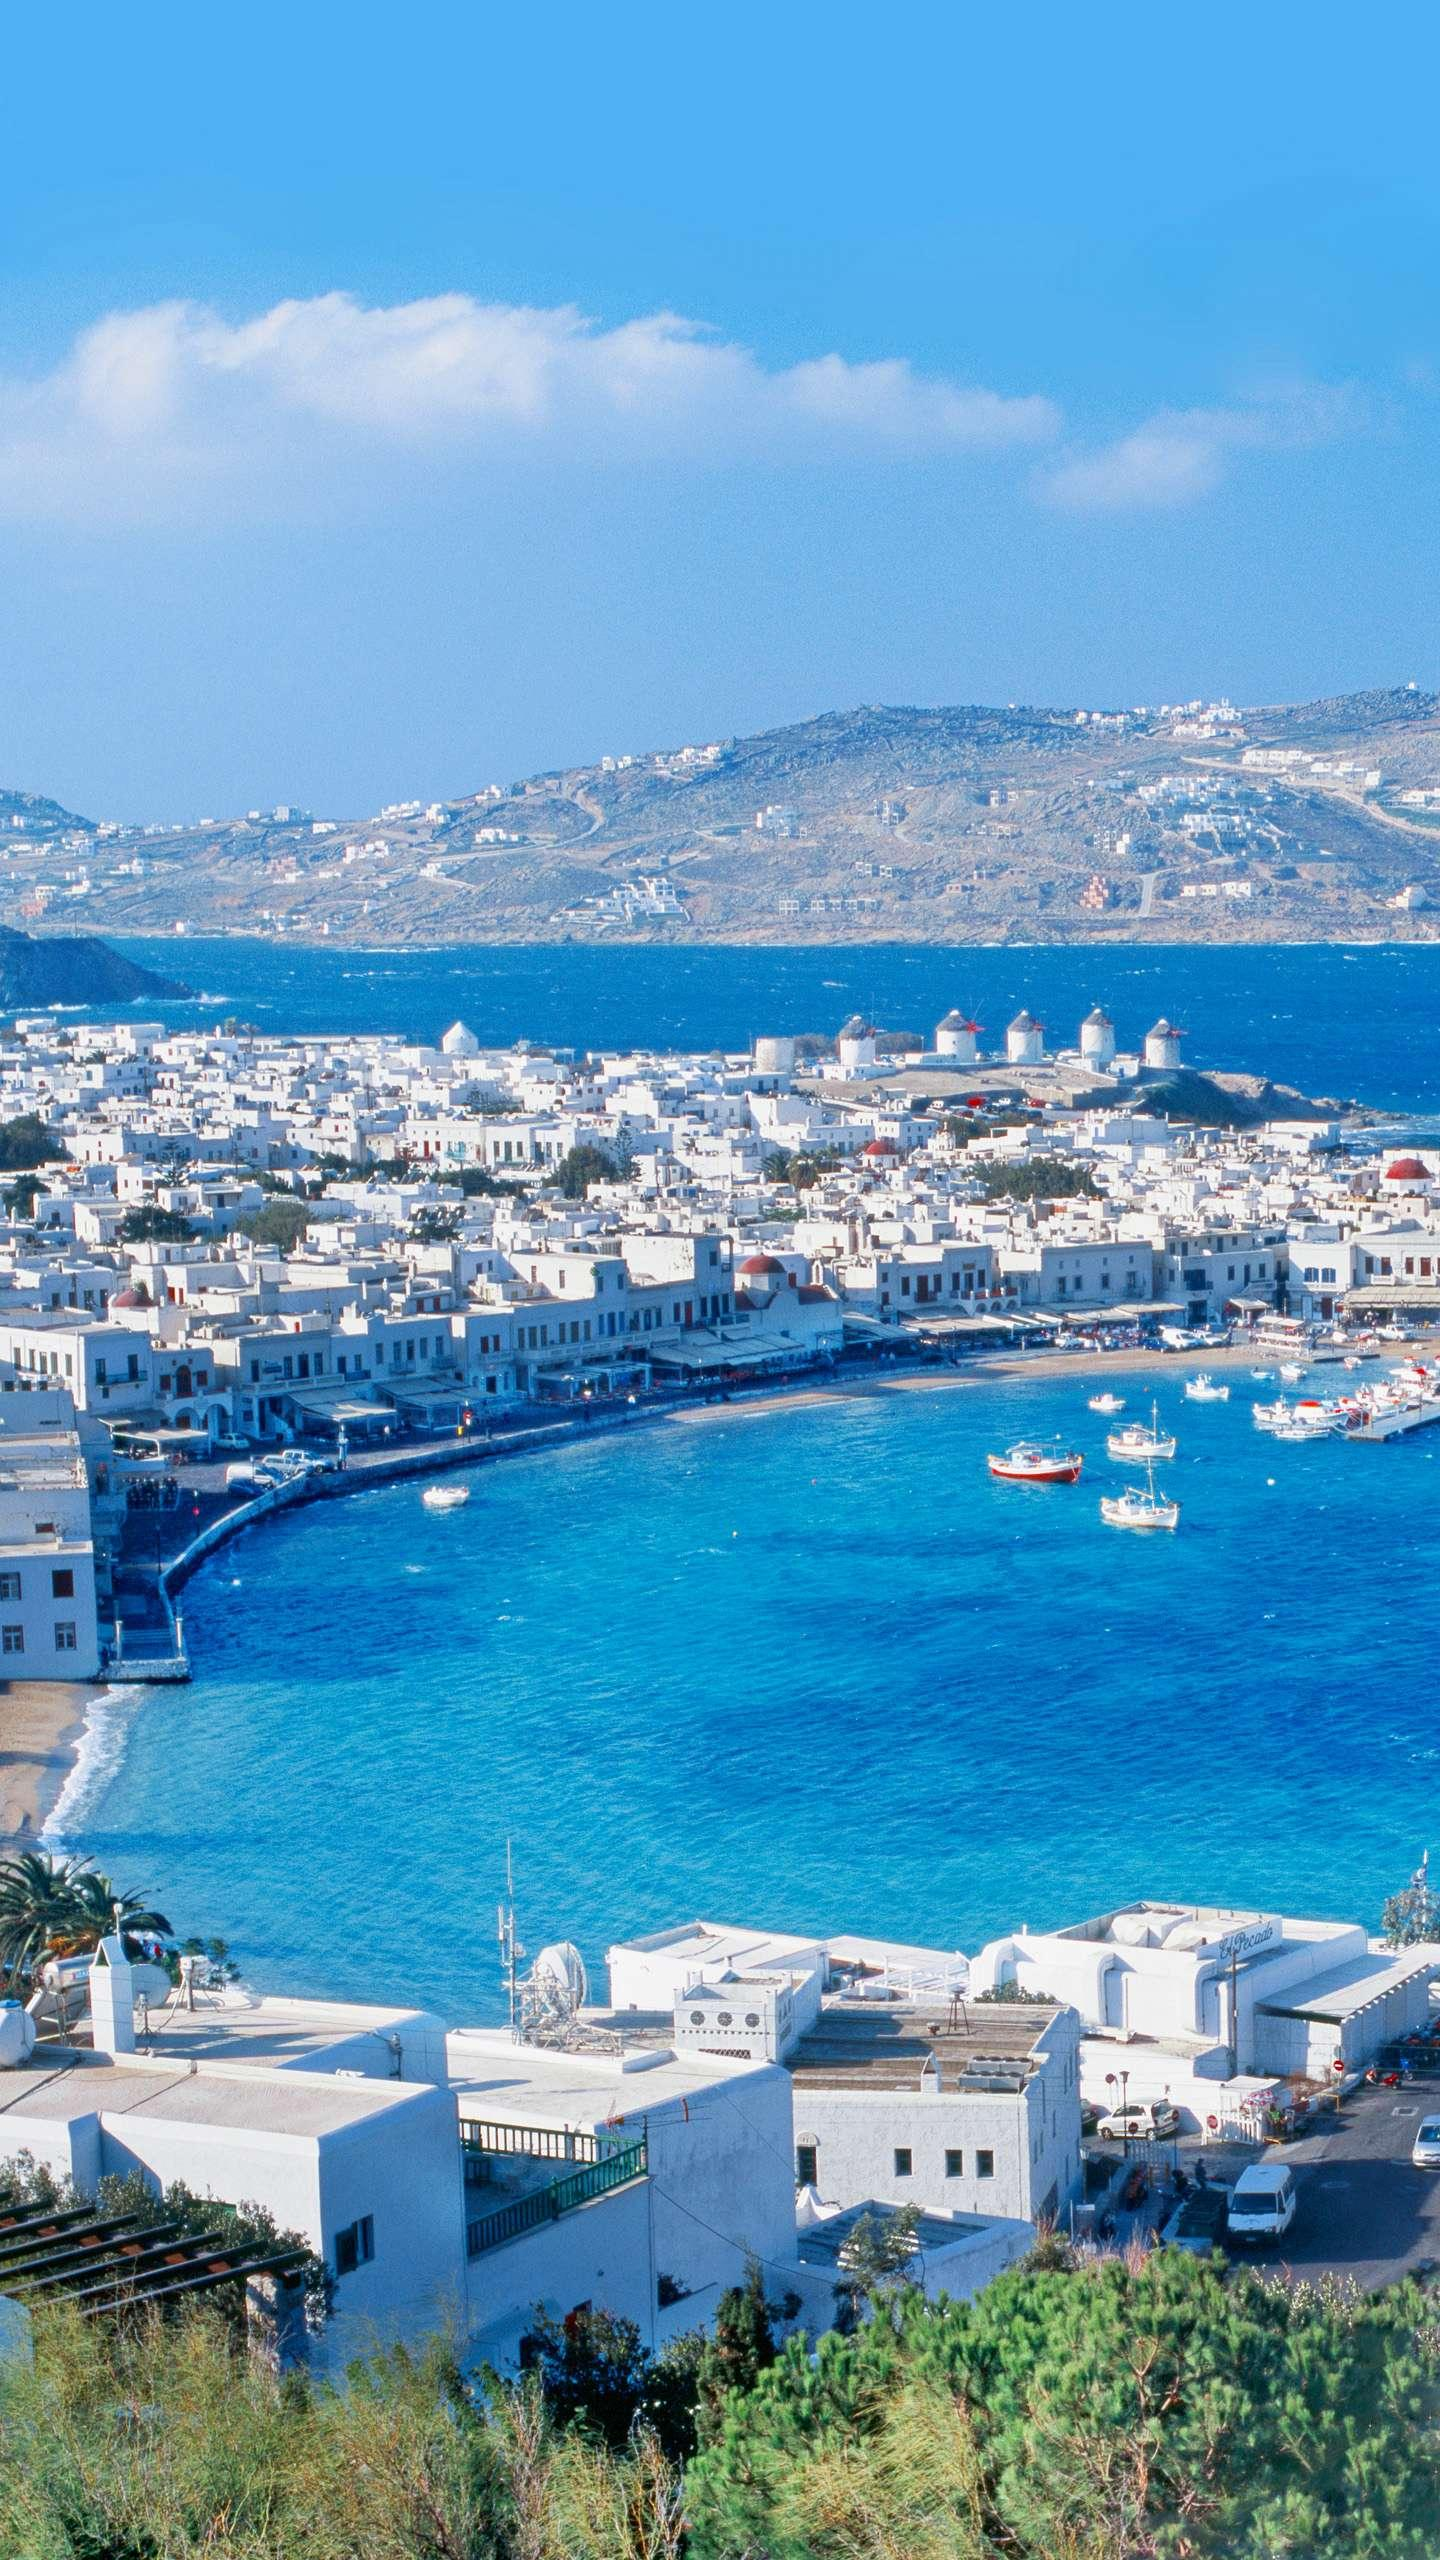 Greece - Mykonos, Greece's romance is far more than Santorini, and Mykonos is also a holiday island that tourists love.